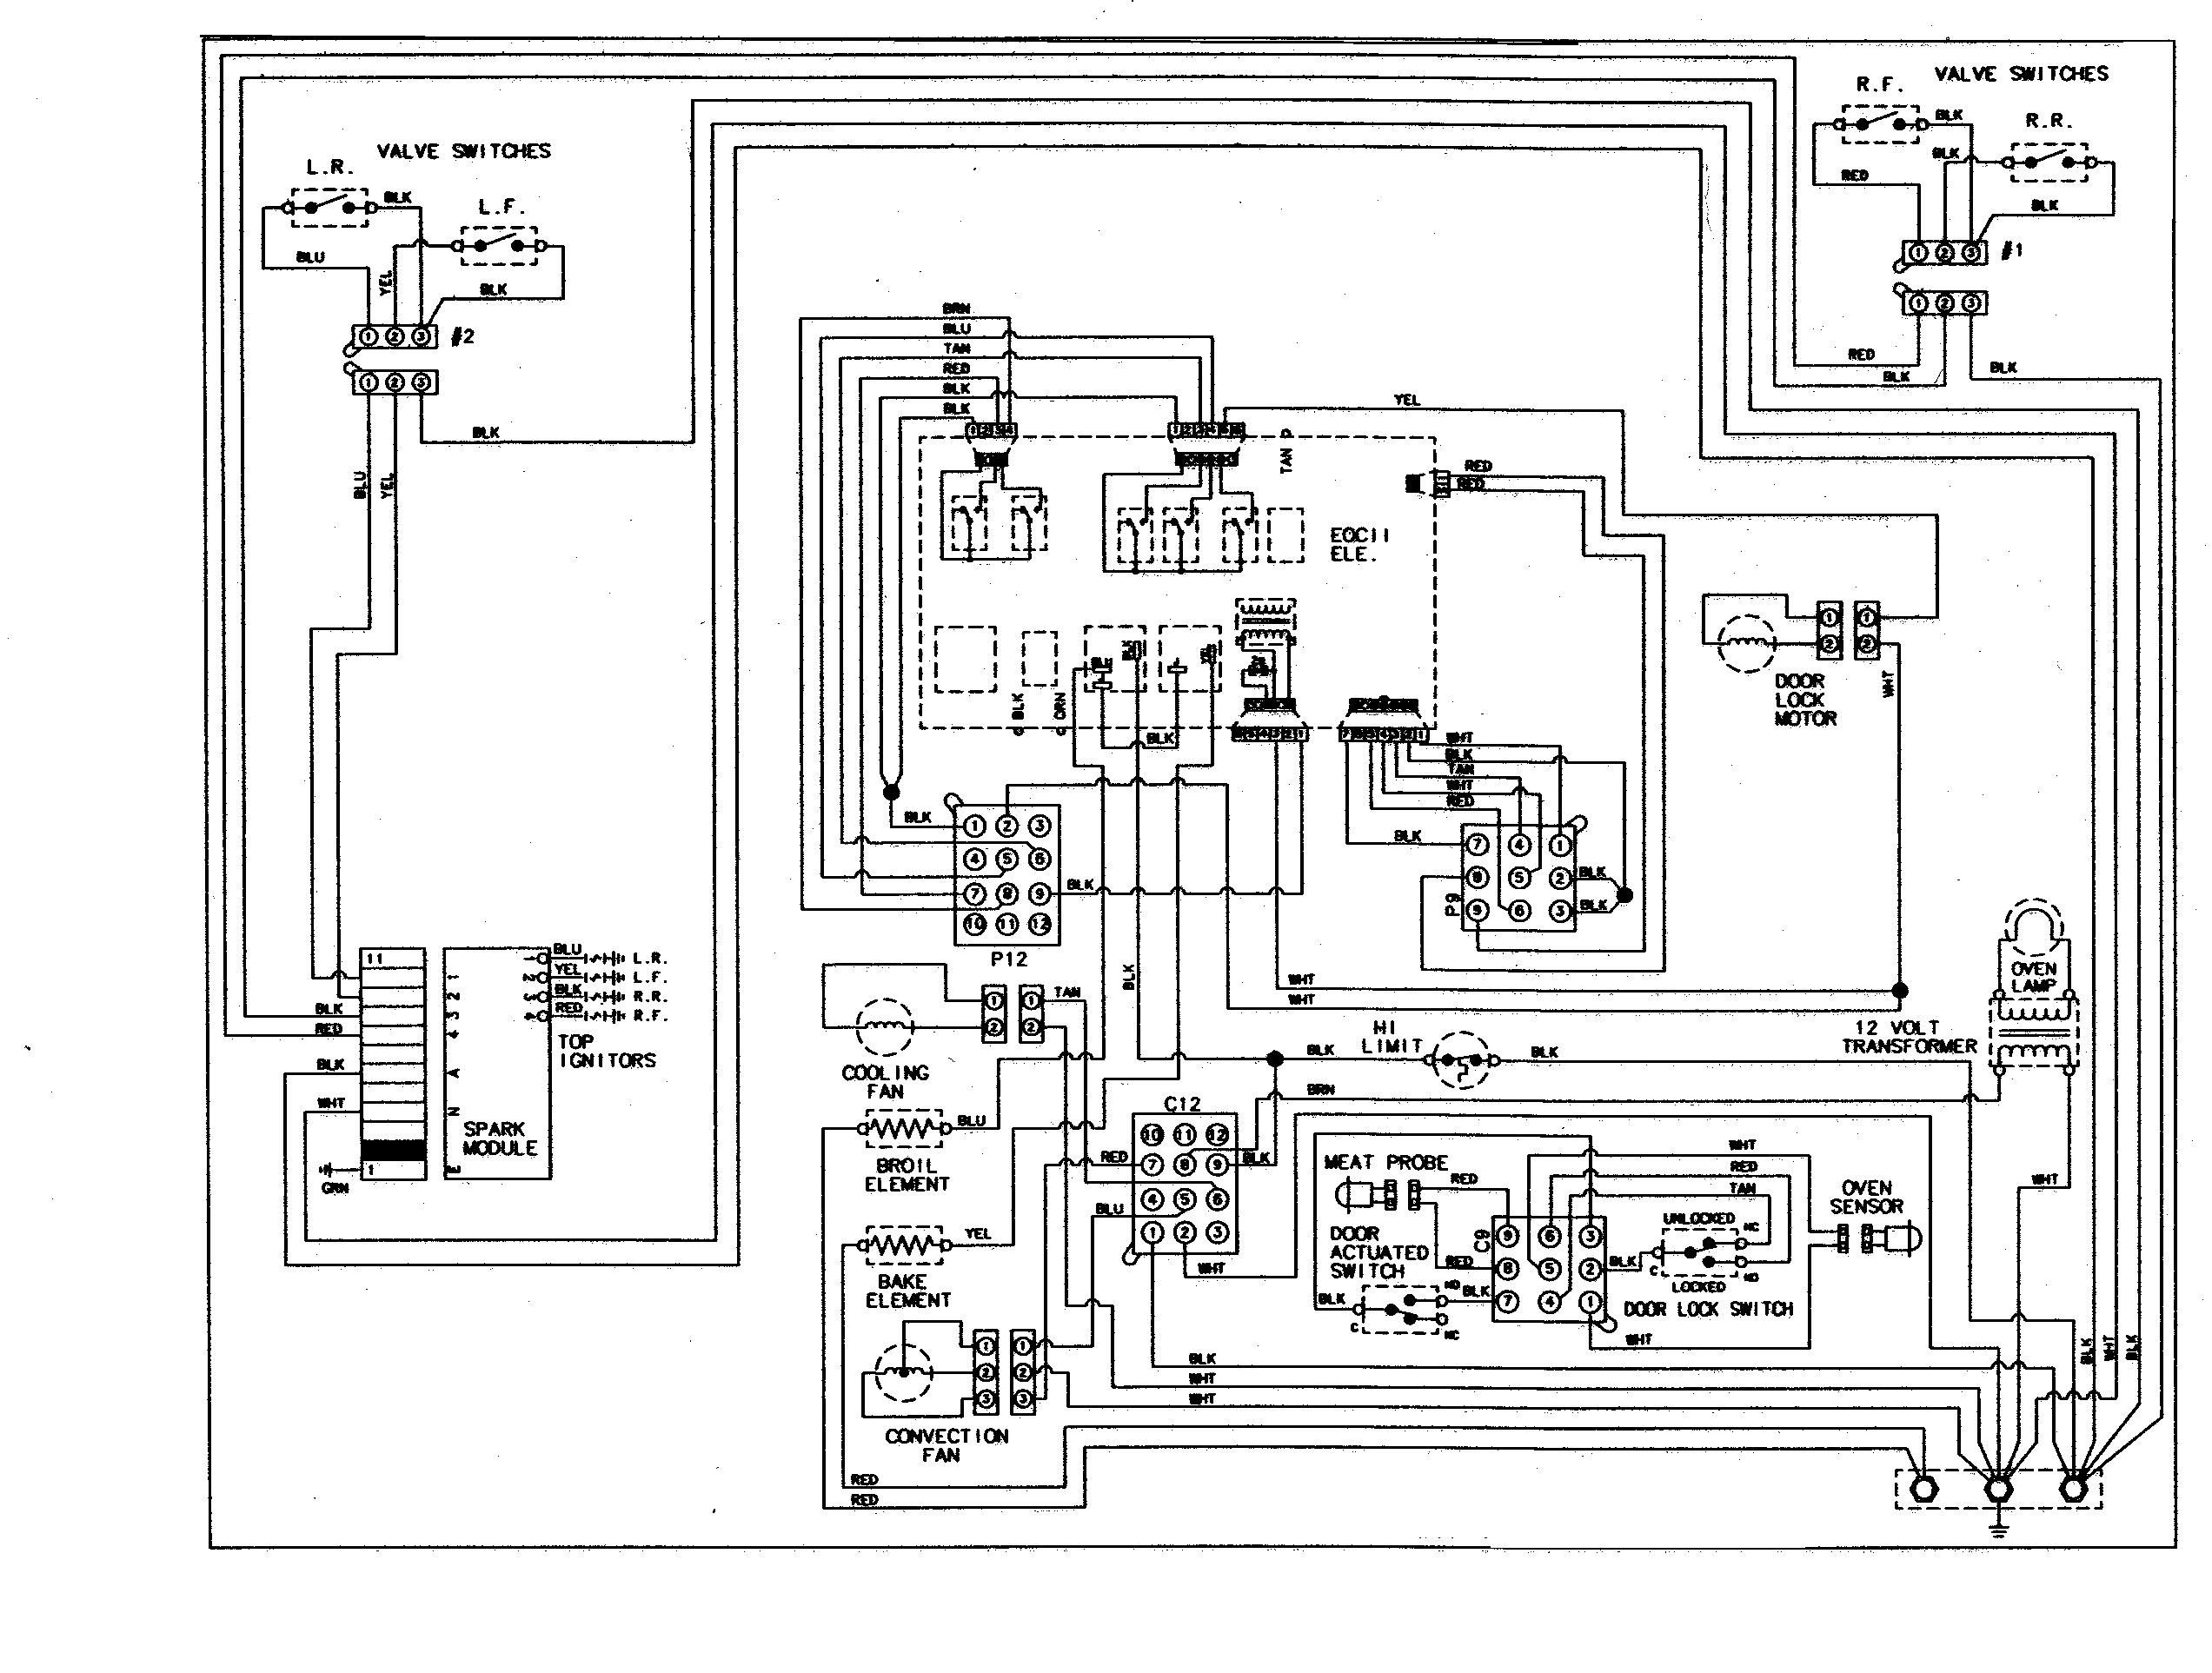 wiring information parts jenn air wiring diagram whirlpool range wiring diagram \u2022 wiring  at suagrazia.org